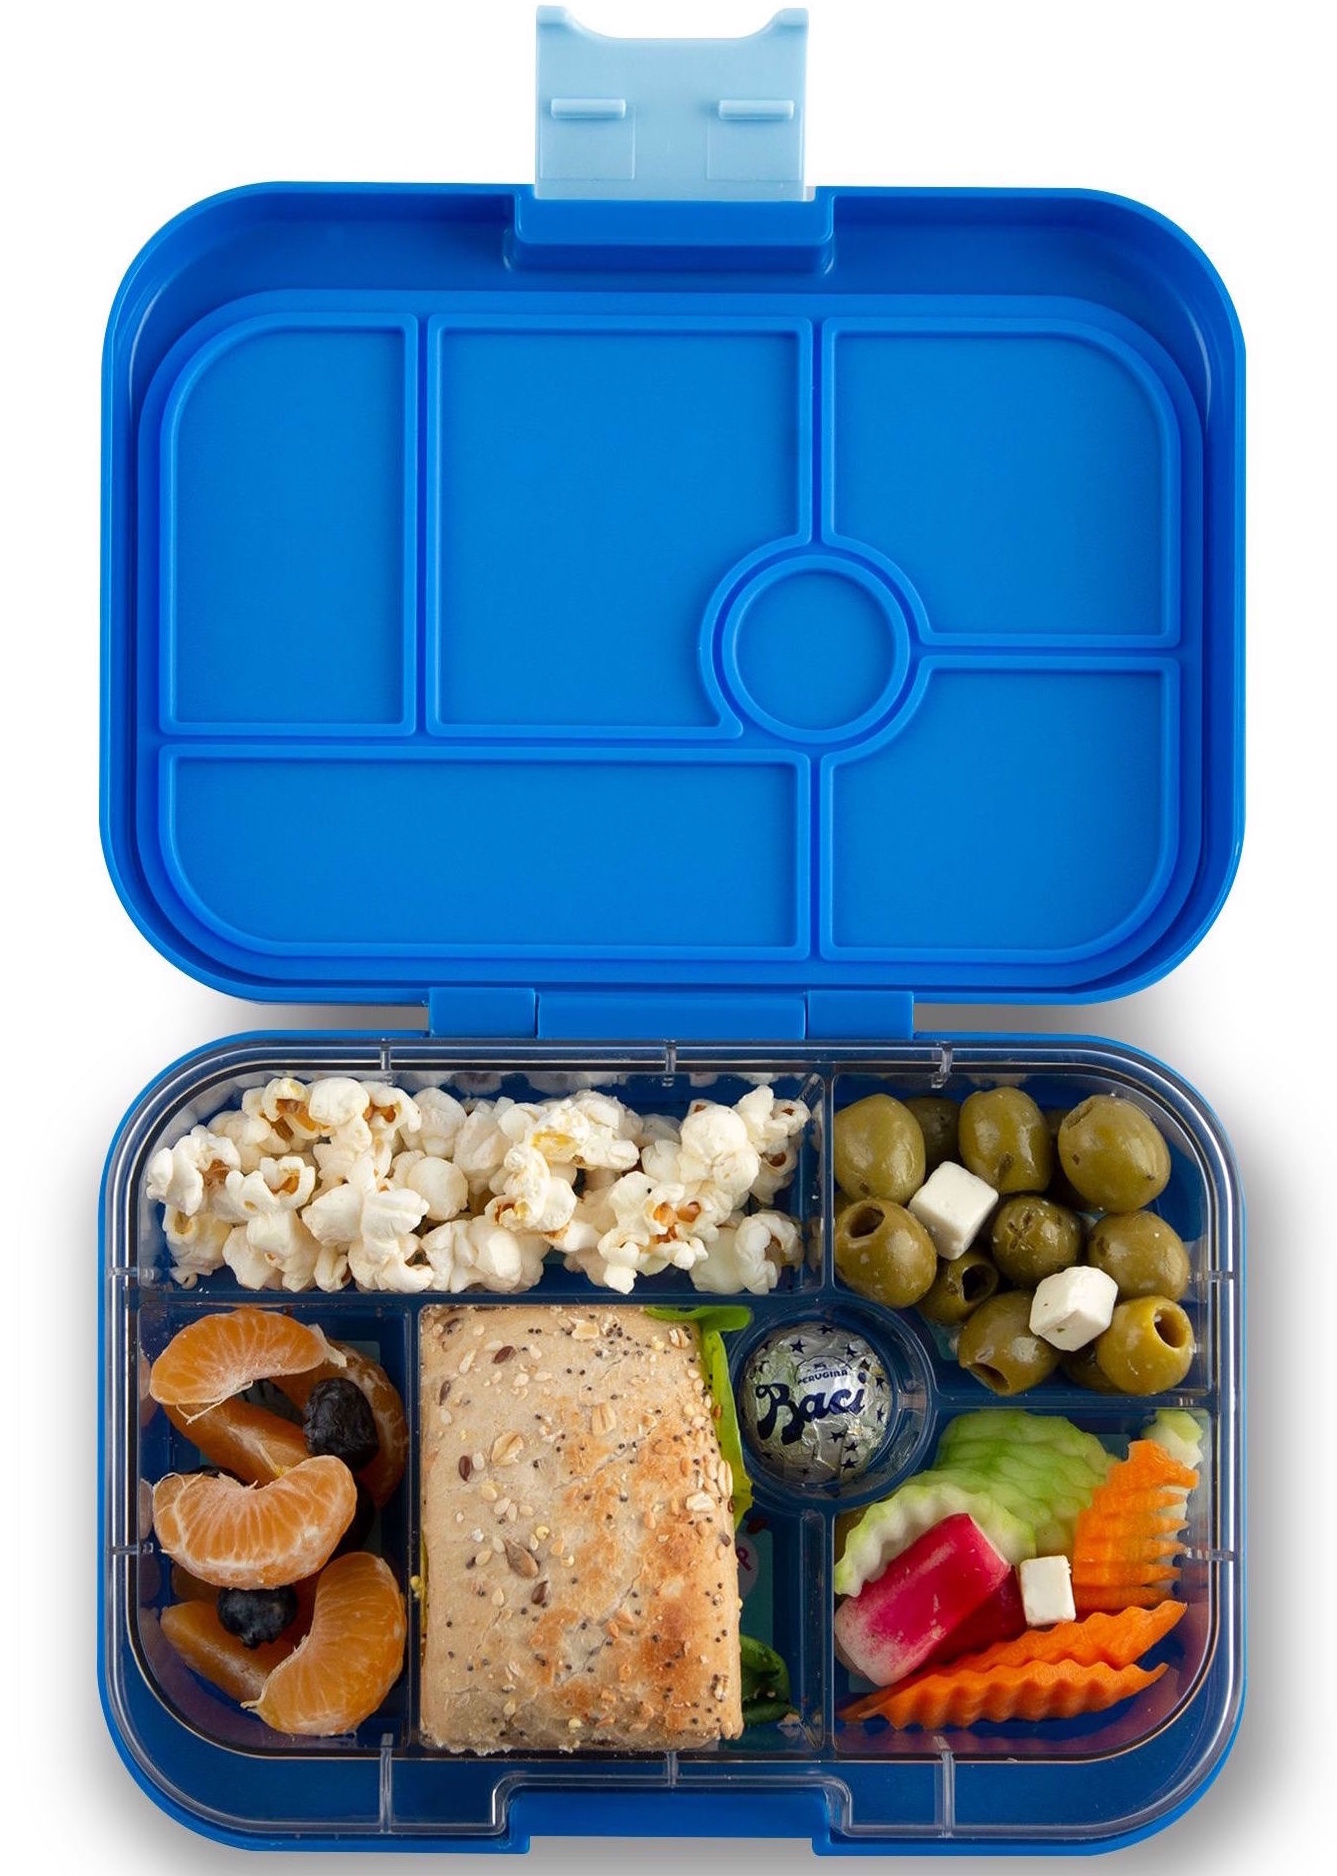 Yumbox Original 6-vakken True blue / Funny Monsters tray-2